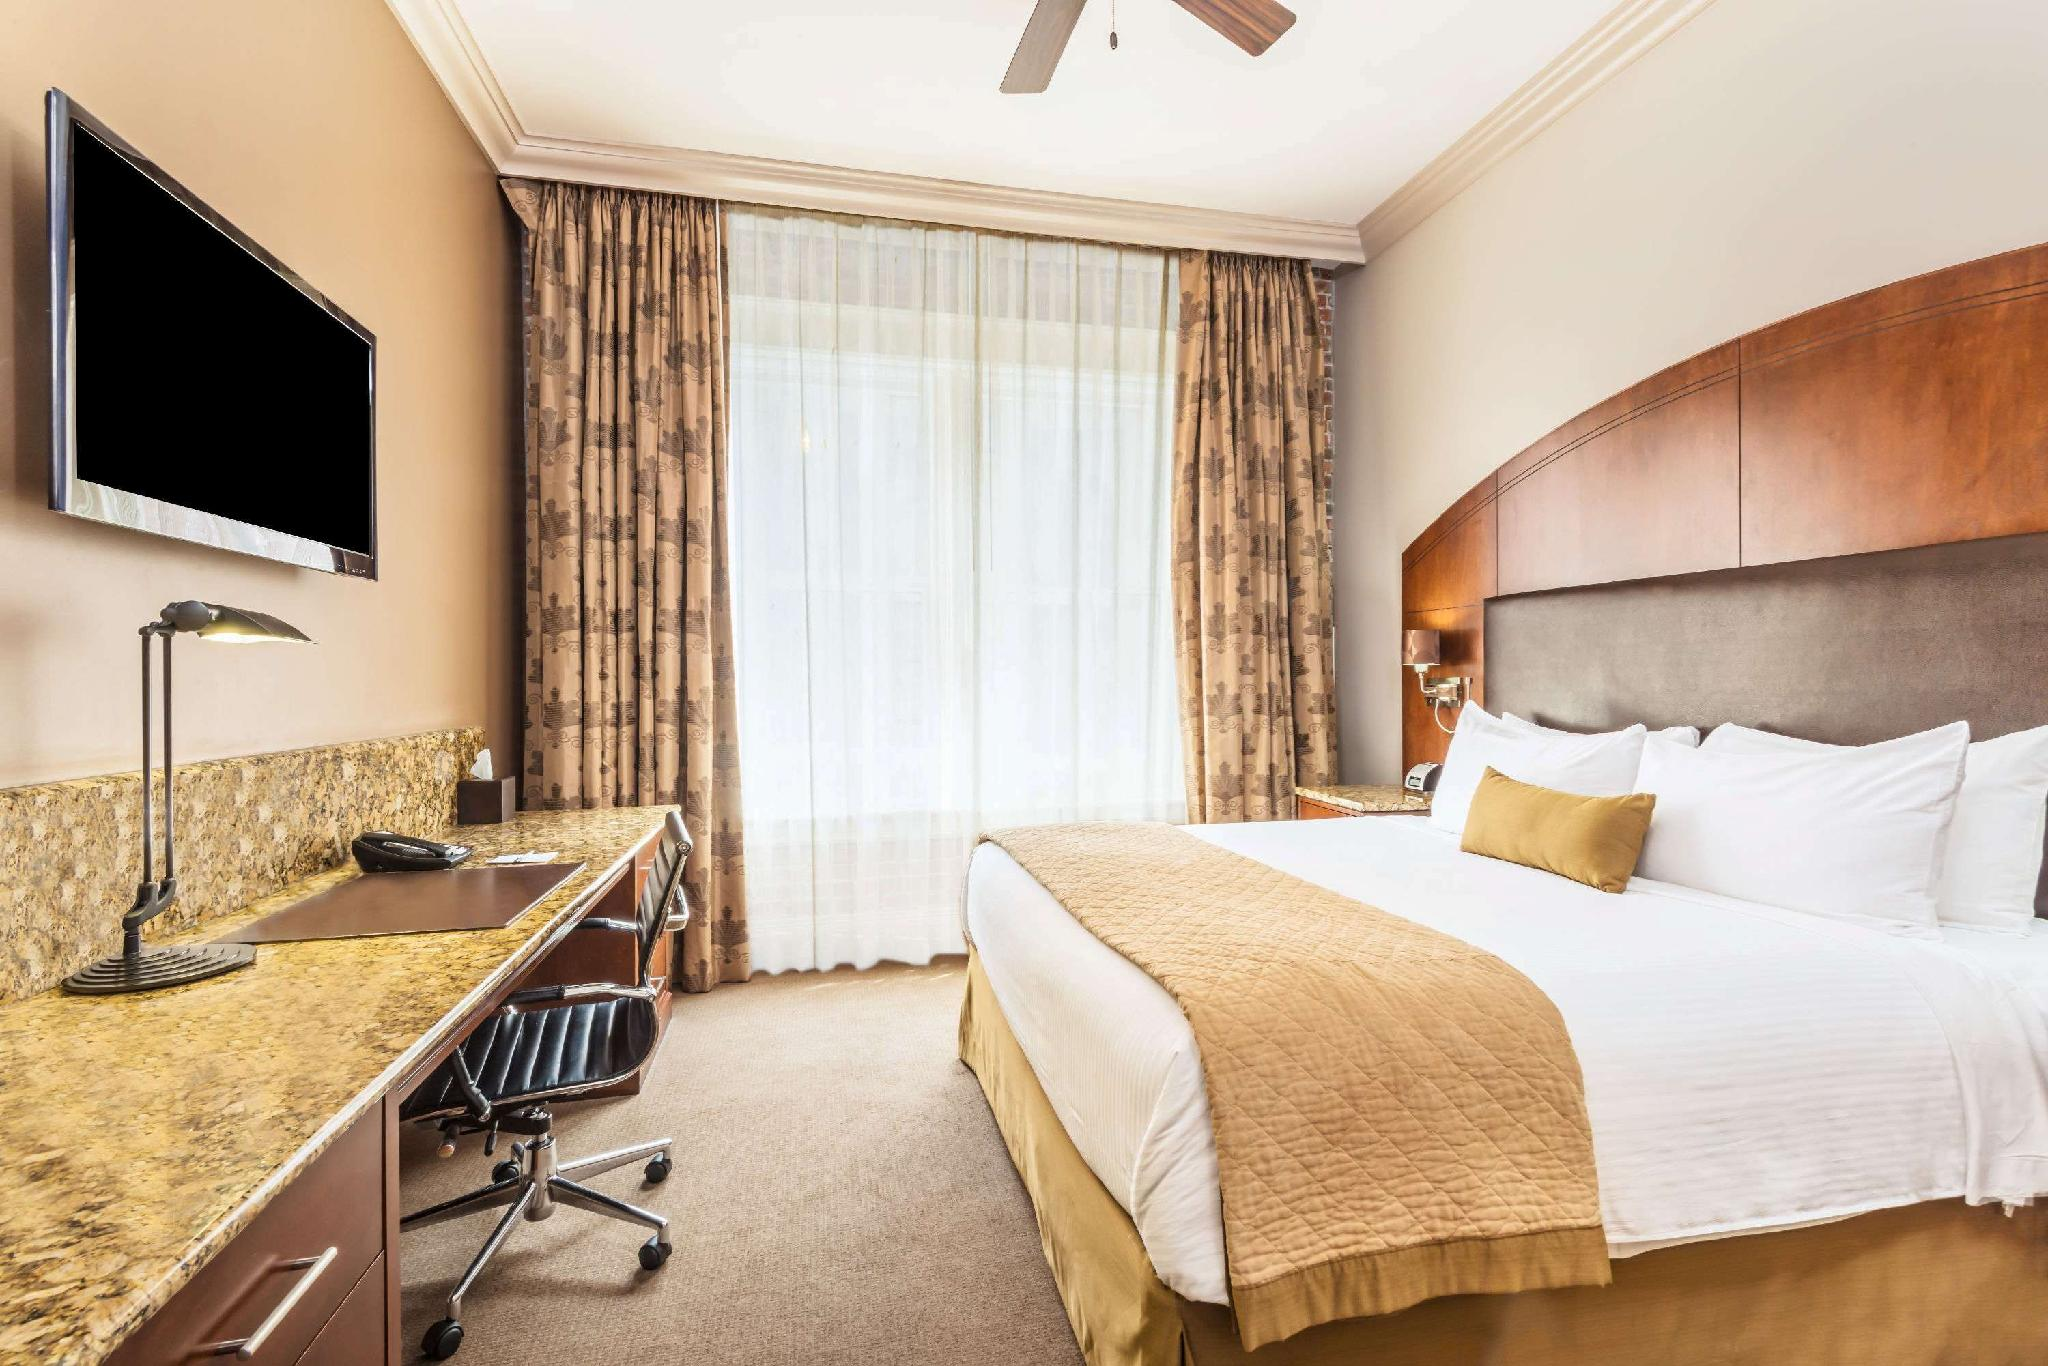 Room at The Mining Exchange, A Wyndham Grand Hotel & Spa.